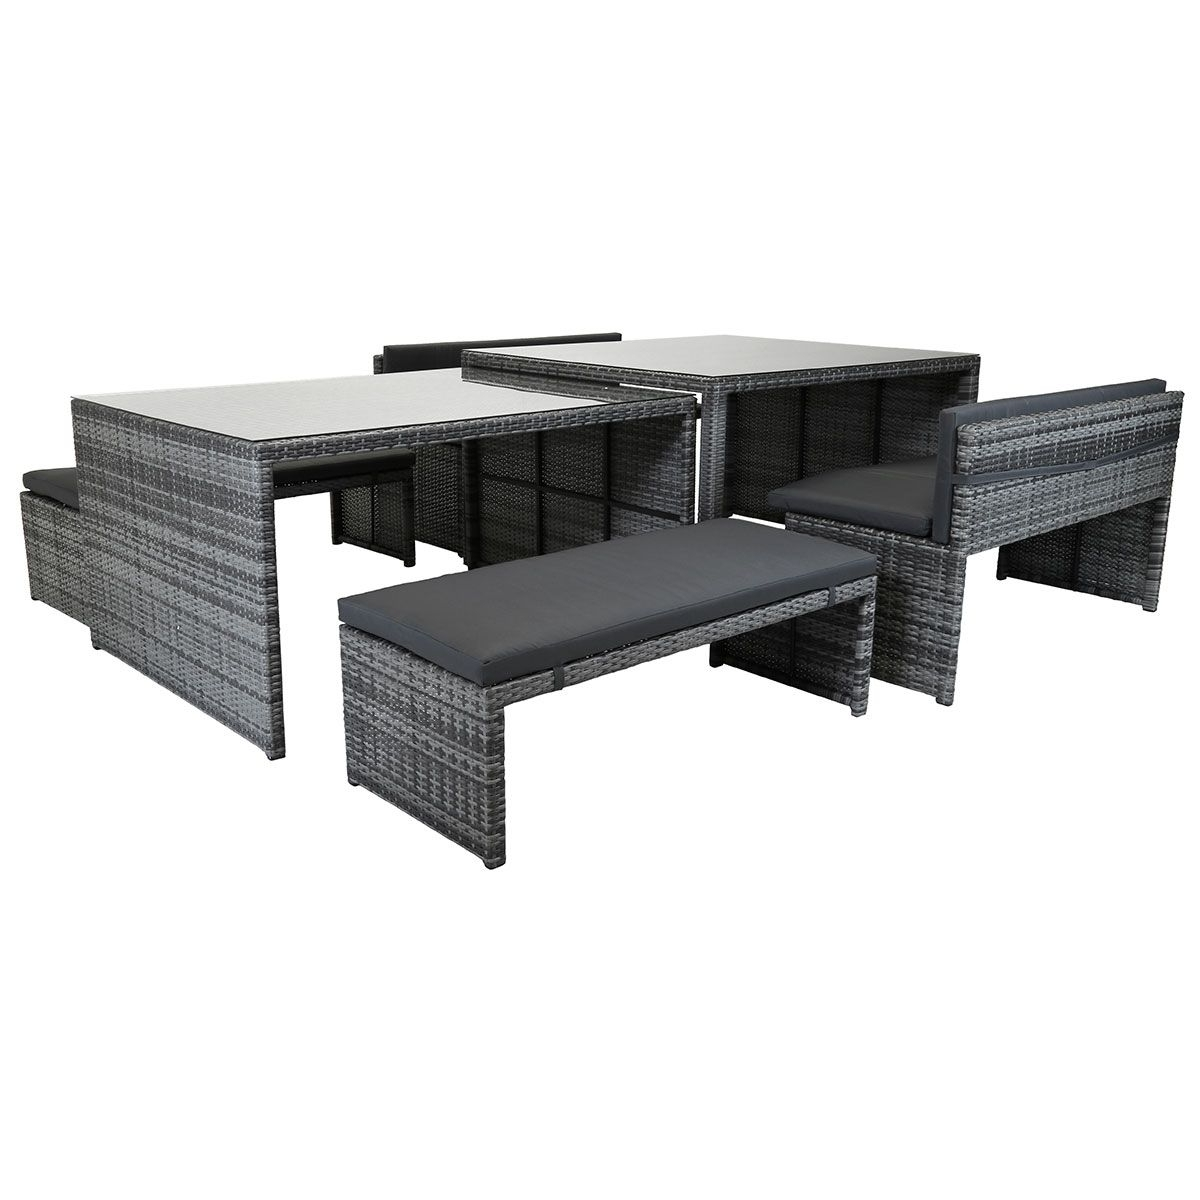 Widely Used Charles Bentley Rectangular Rattan Dining Set – Grey In Compact Dining Sets (View 25 of 25)